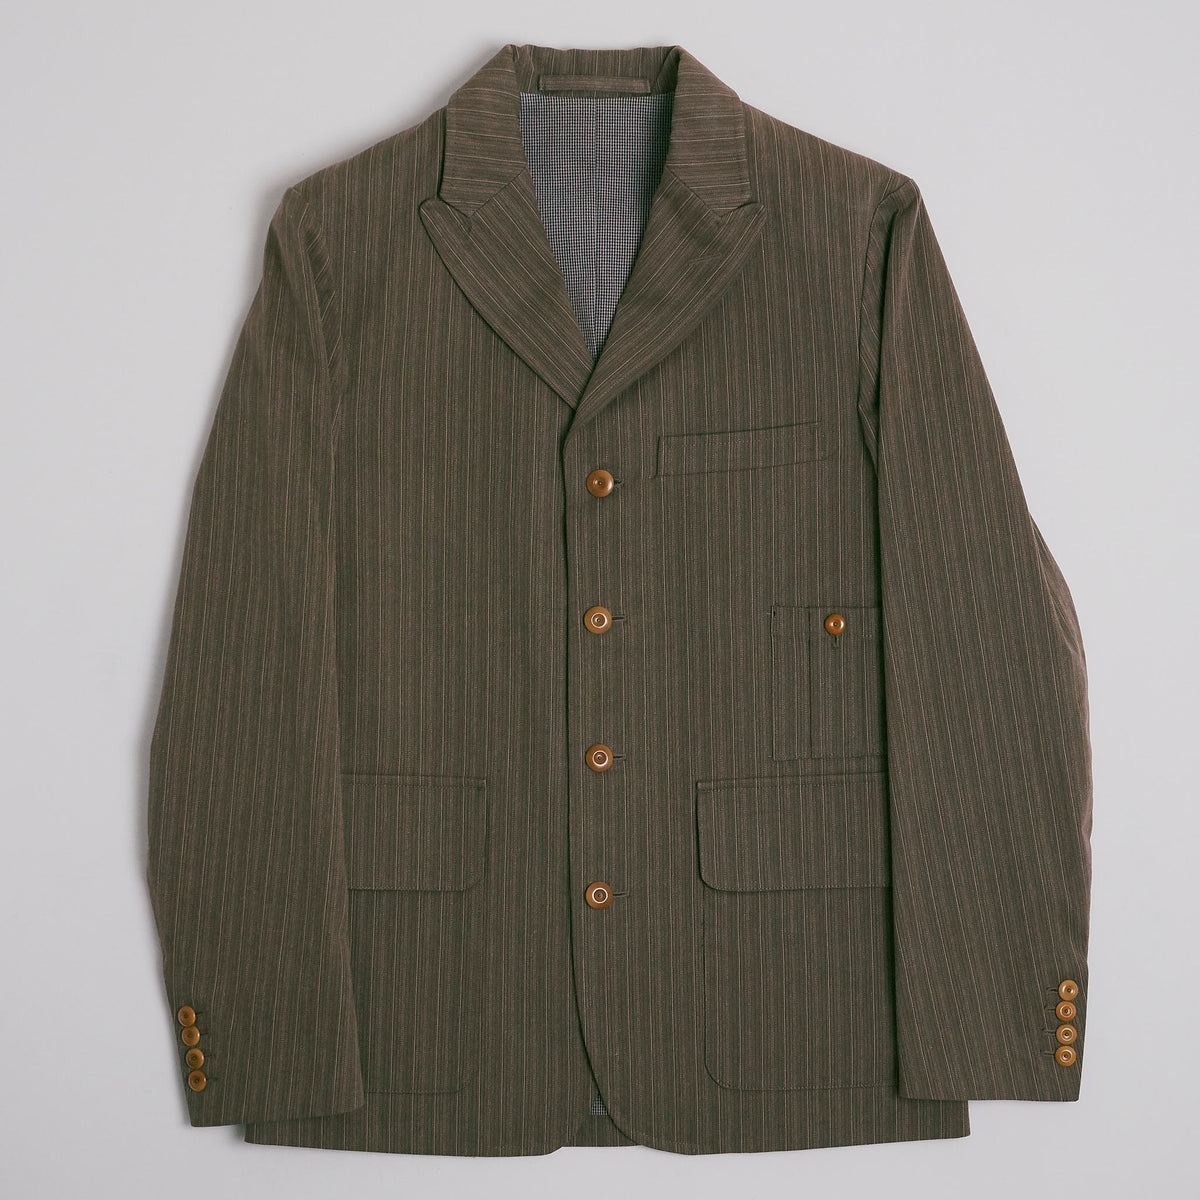 Nigel Cabourn 1910 Peak Lapel Stripe Veston